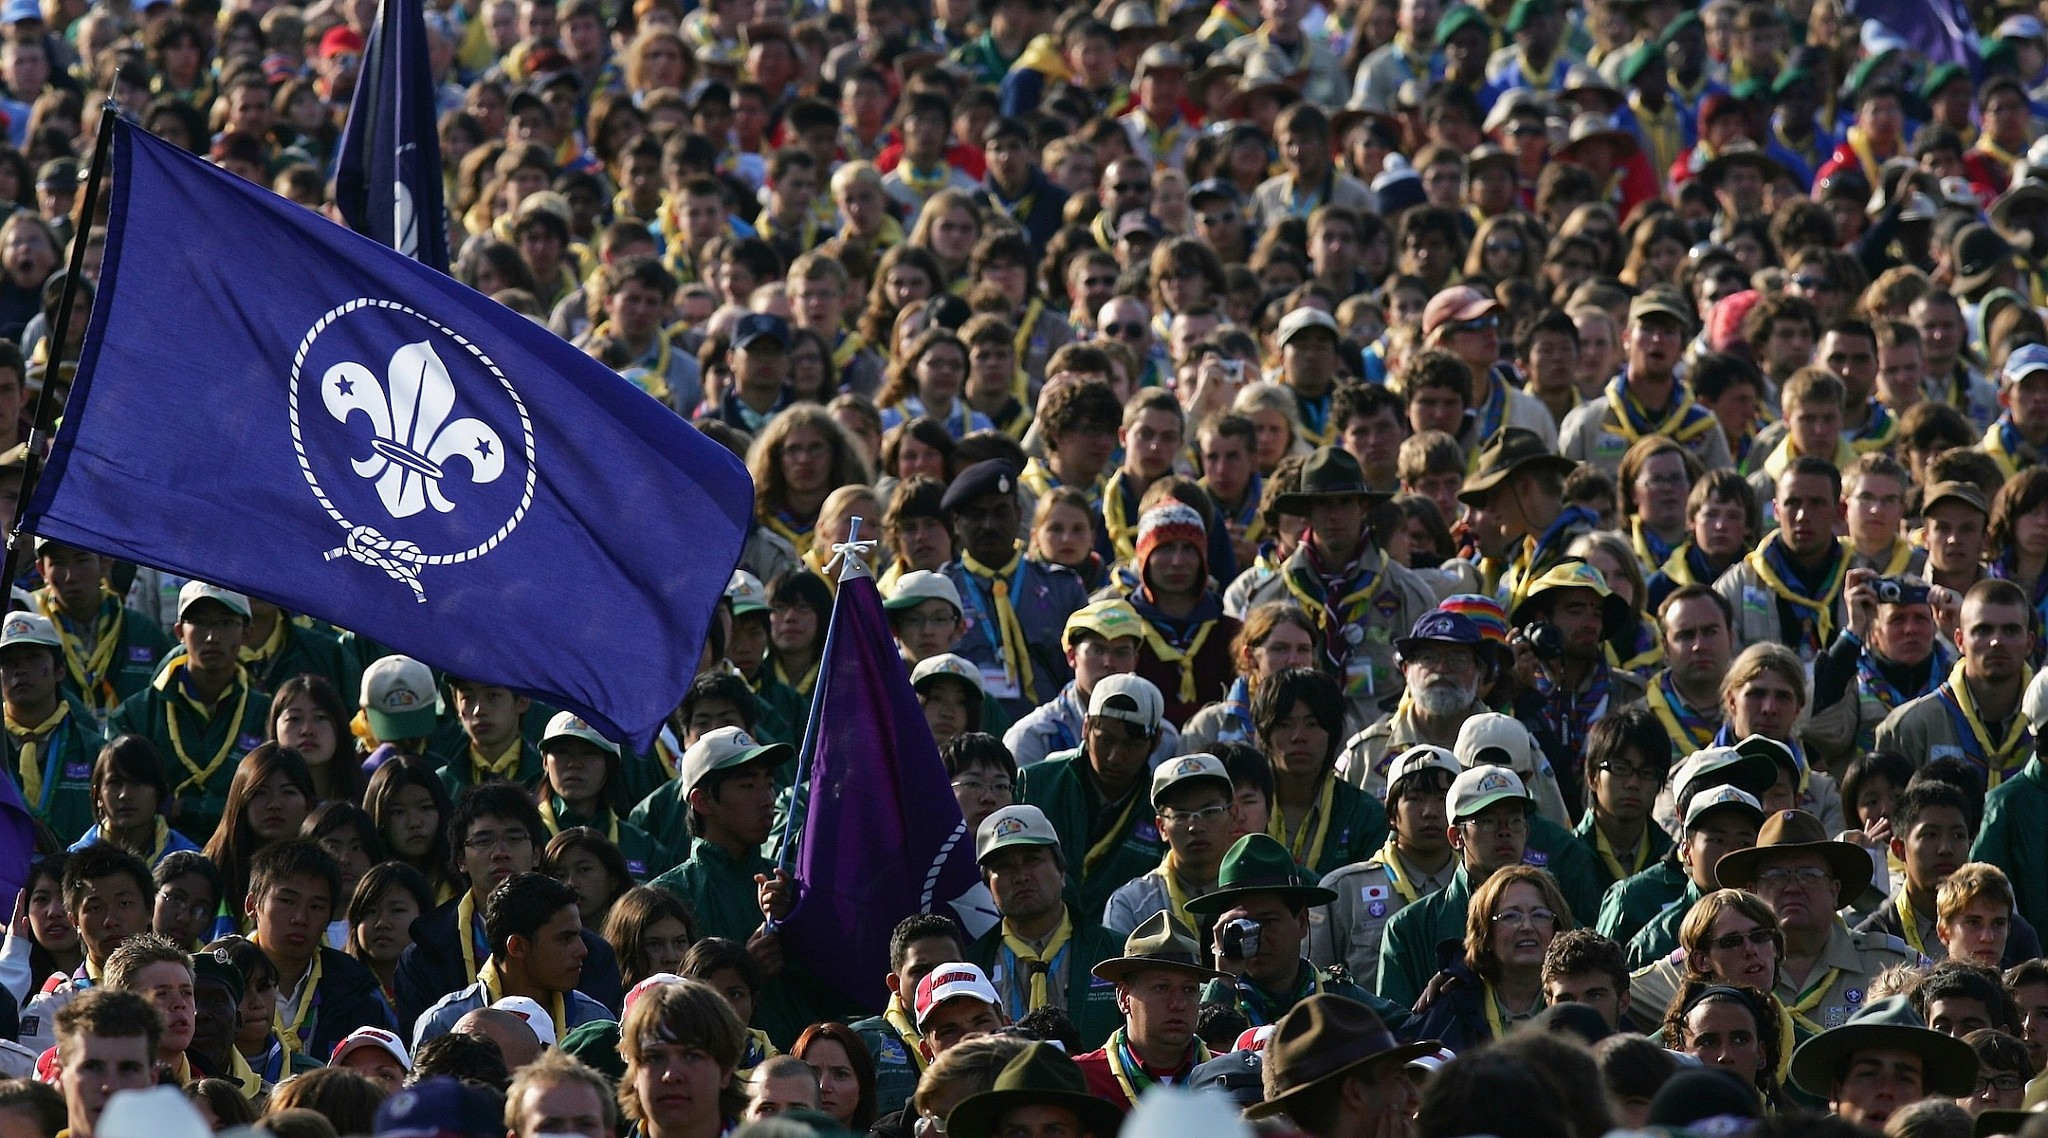 Reform Rabbi Is In Charge Of 10 Religions At This Year S World Scouting Jamboree The Times Of Israel